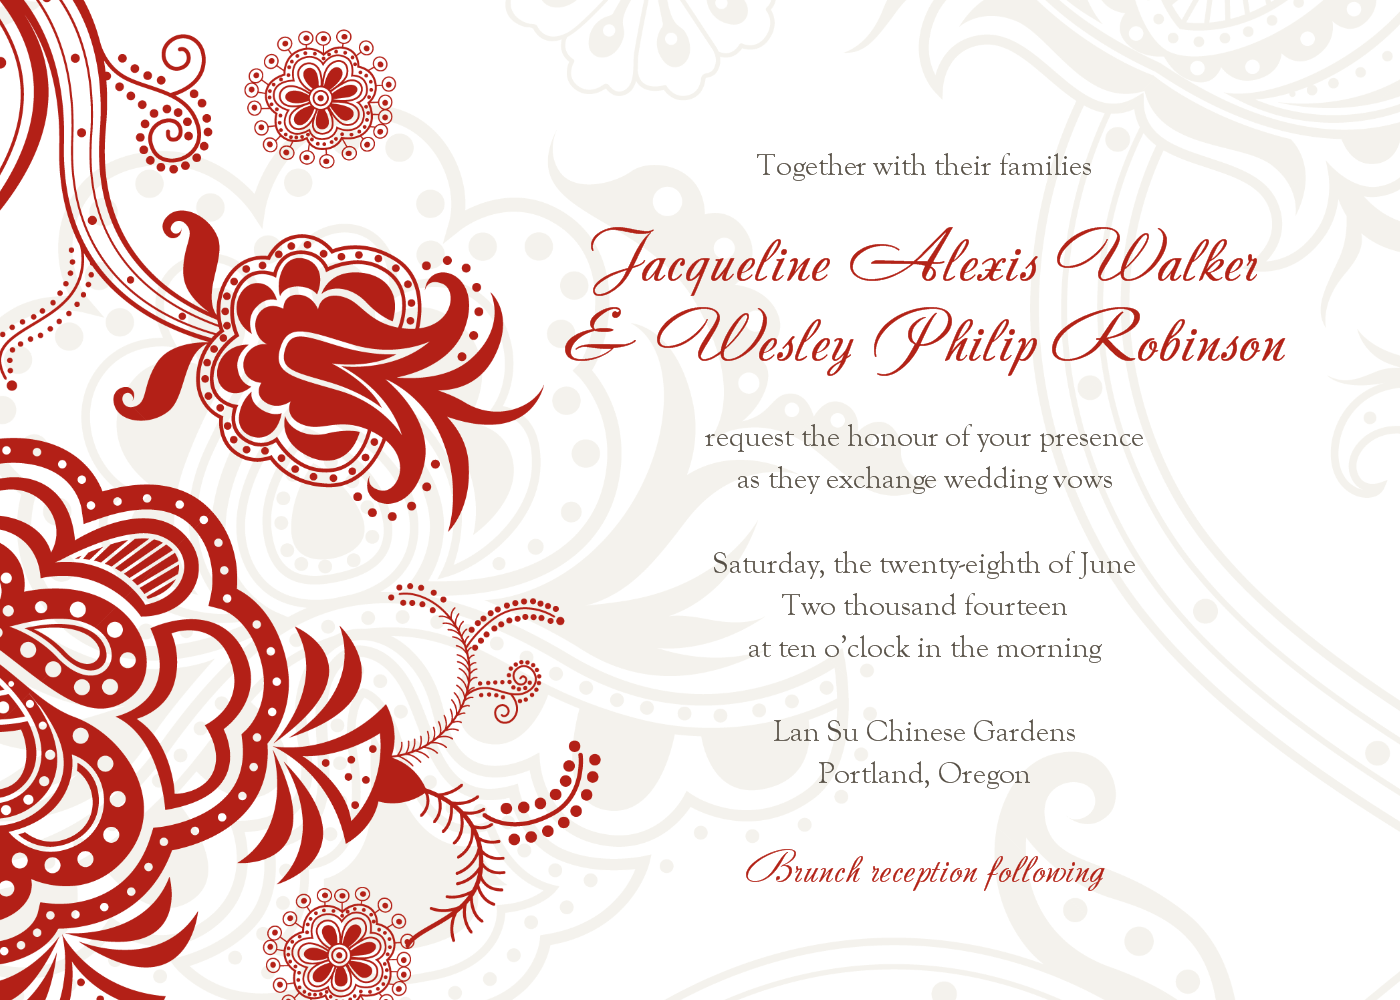 39 Printable Invitation Card Designs Software Free Download Photo With Invitation Card Designs Software Free Download Cards Design Templates